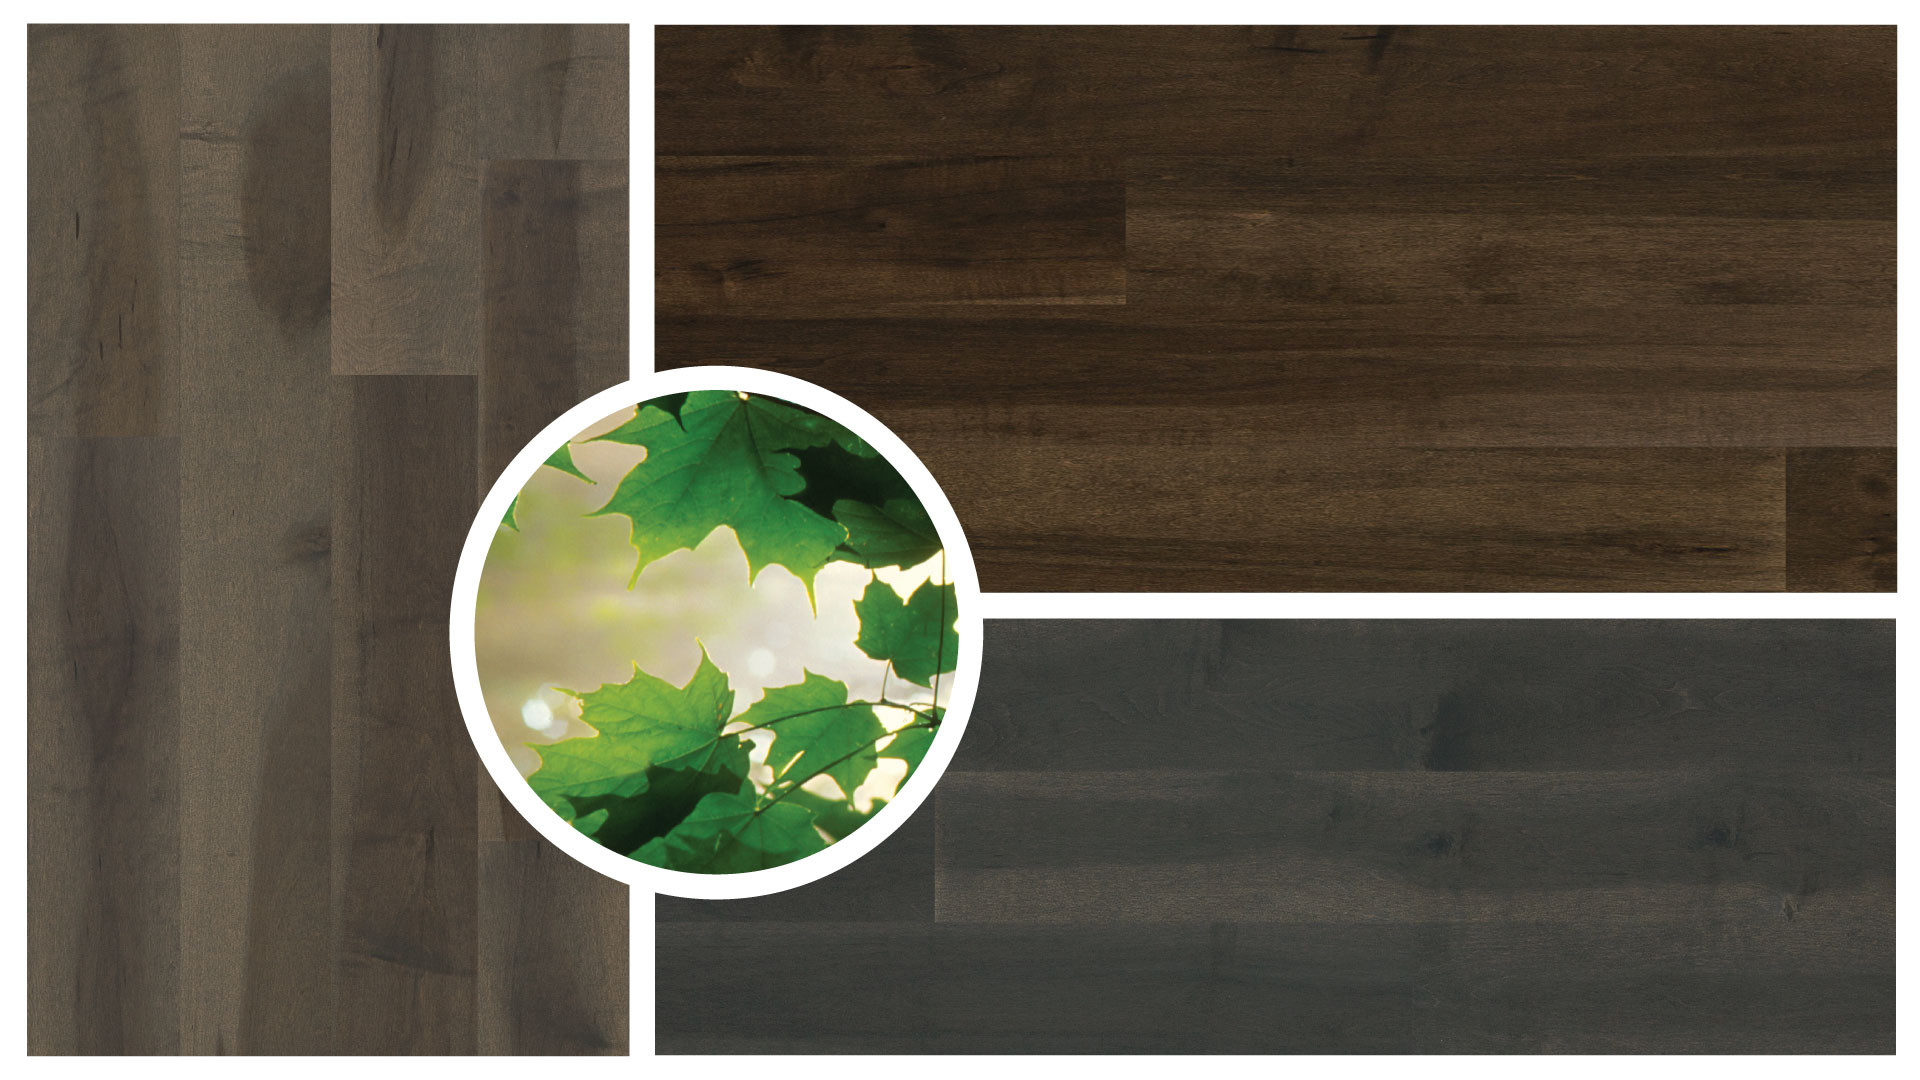 grey hardwood floors canada of 4 latest hardwood flooring trends lauzon flooring within elegant organik series hardwood flooring boasts extensive tonal variation for a chameleon effect becoming lighter or darker depending on the lighting and